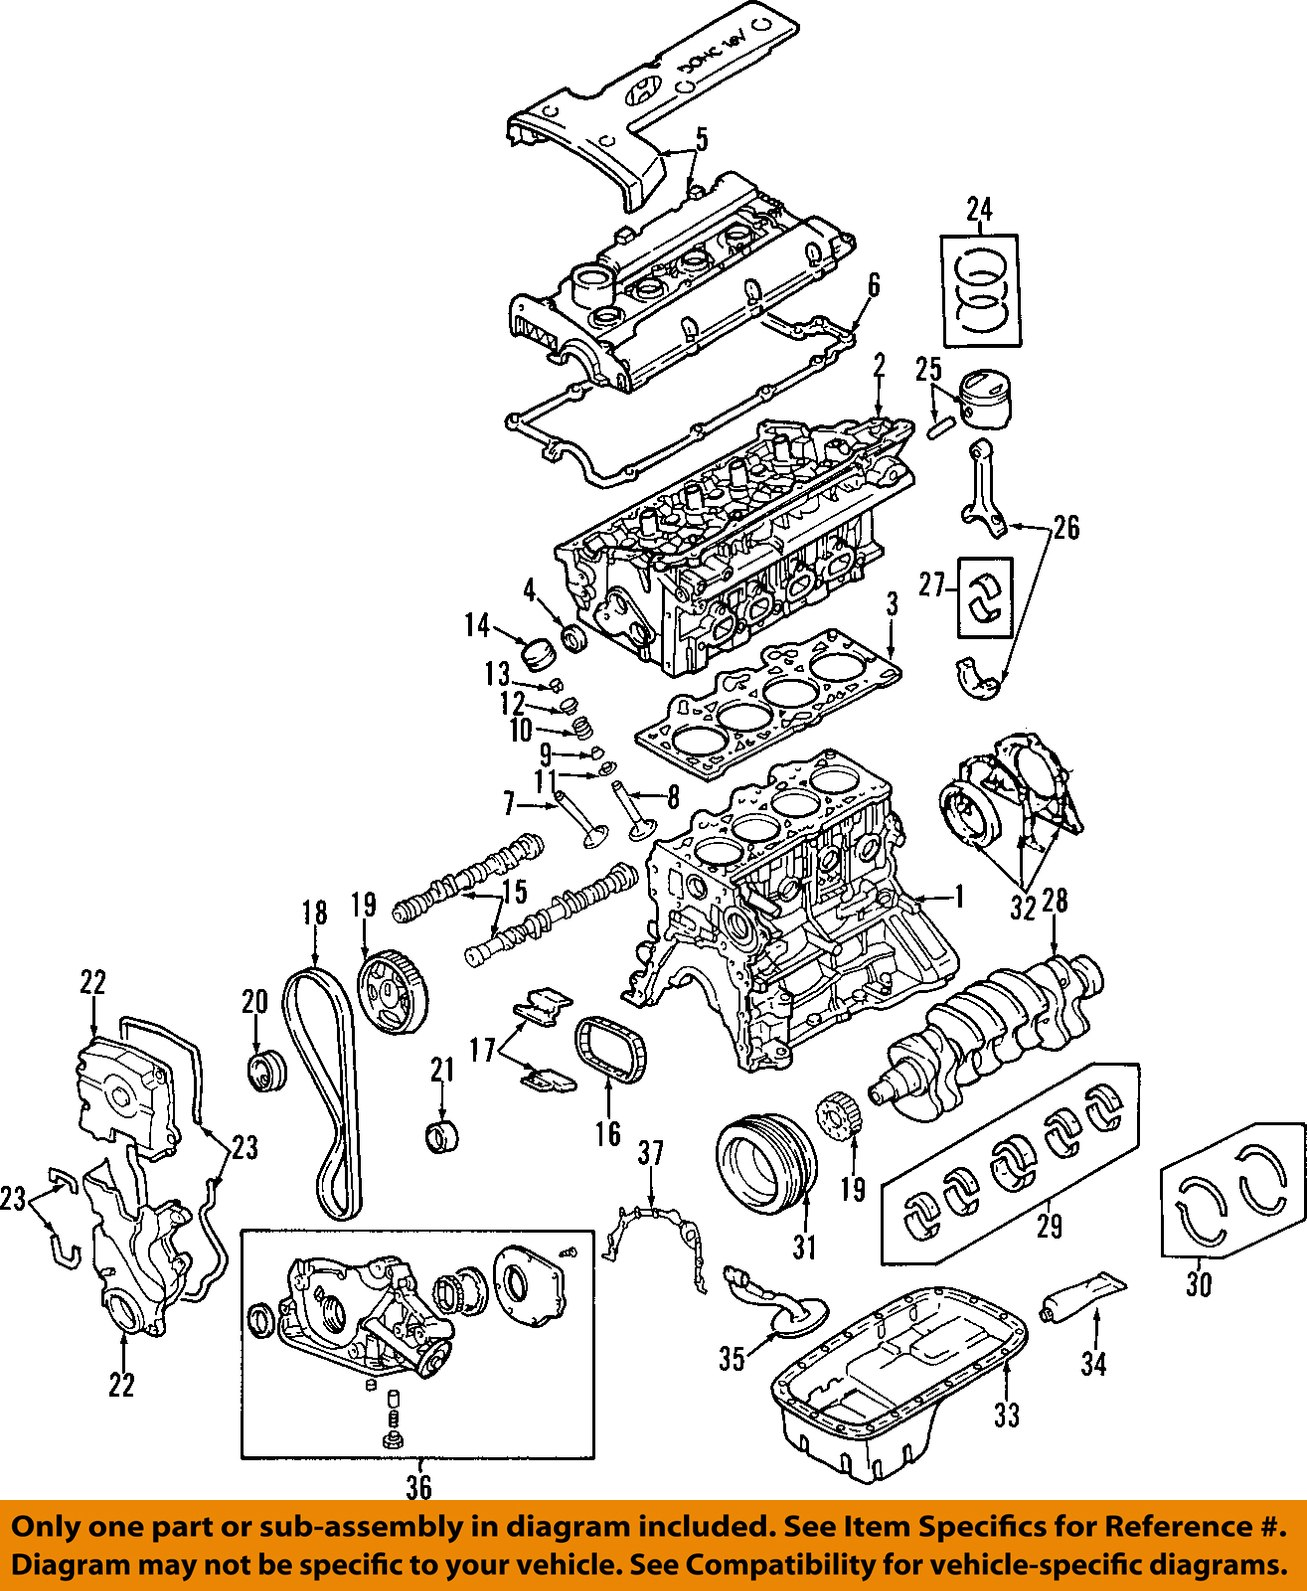 hight resolution of 2 0 hyundai engine oil diagram wiring diagram mega hyundai 2 0 engine diagram